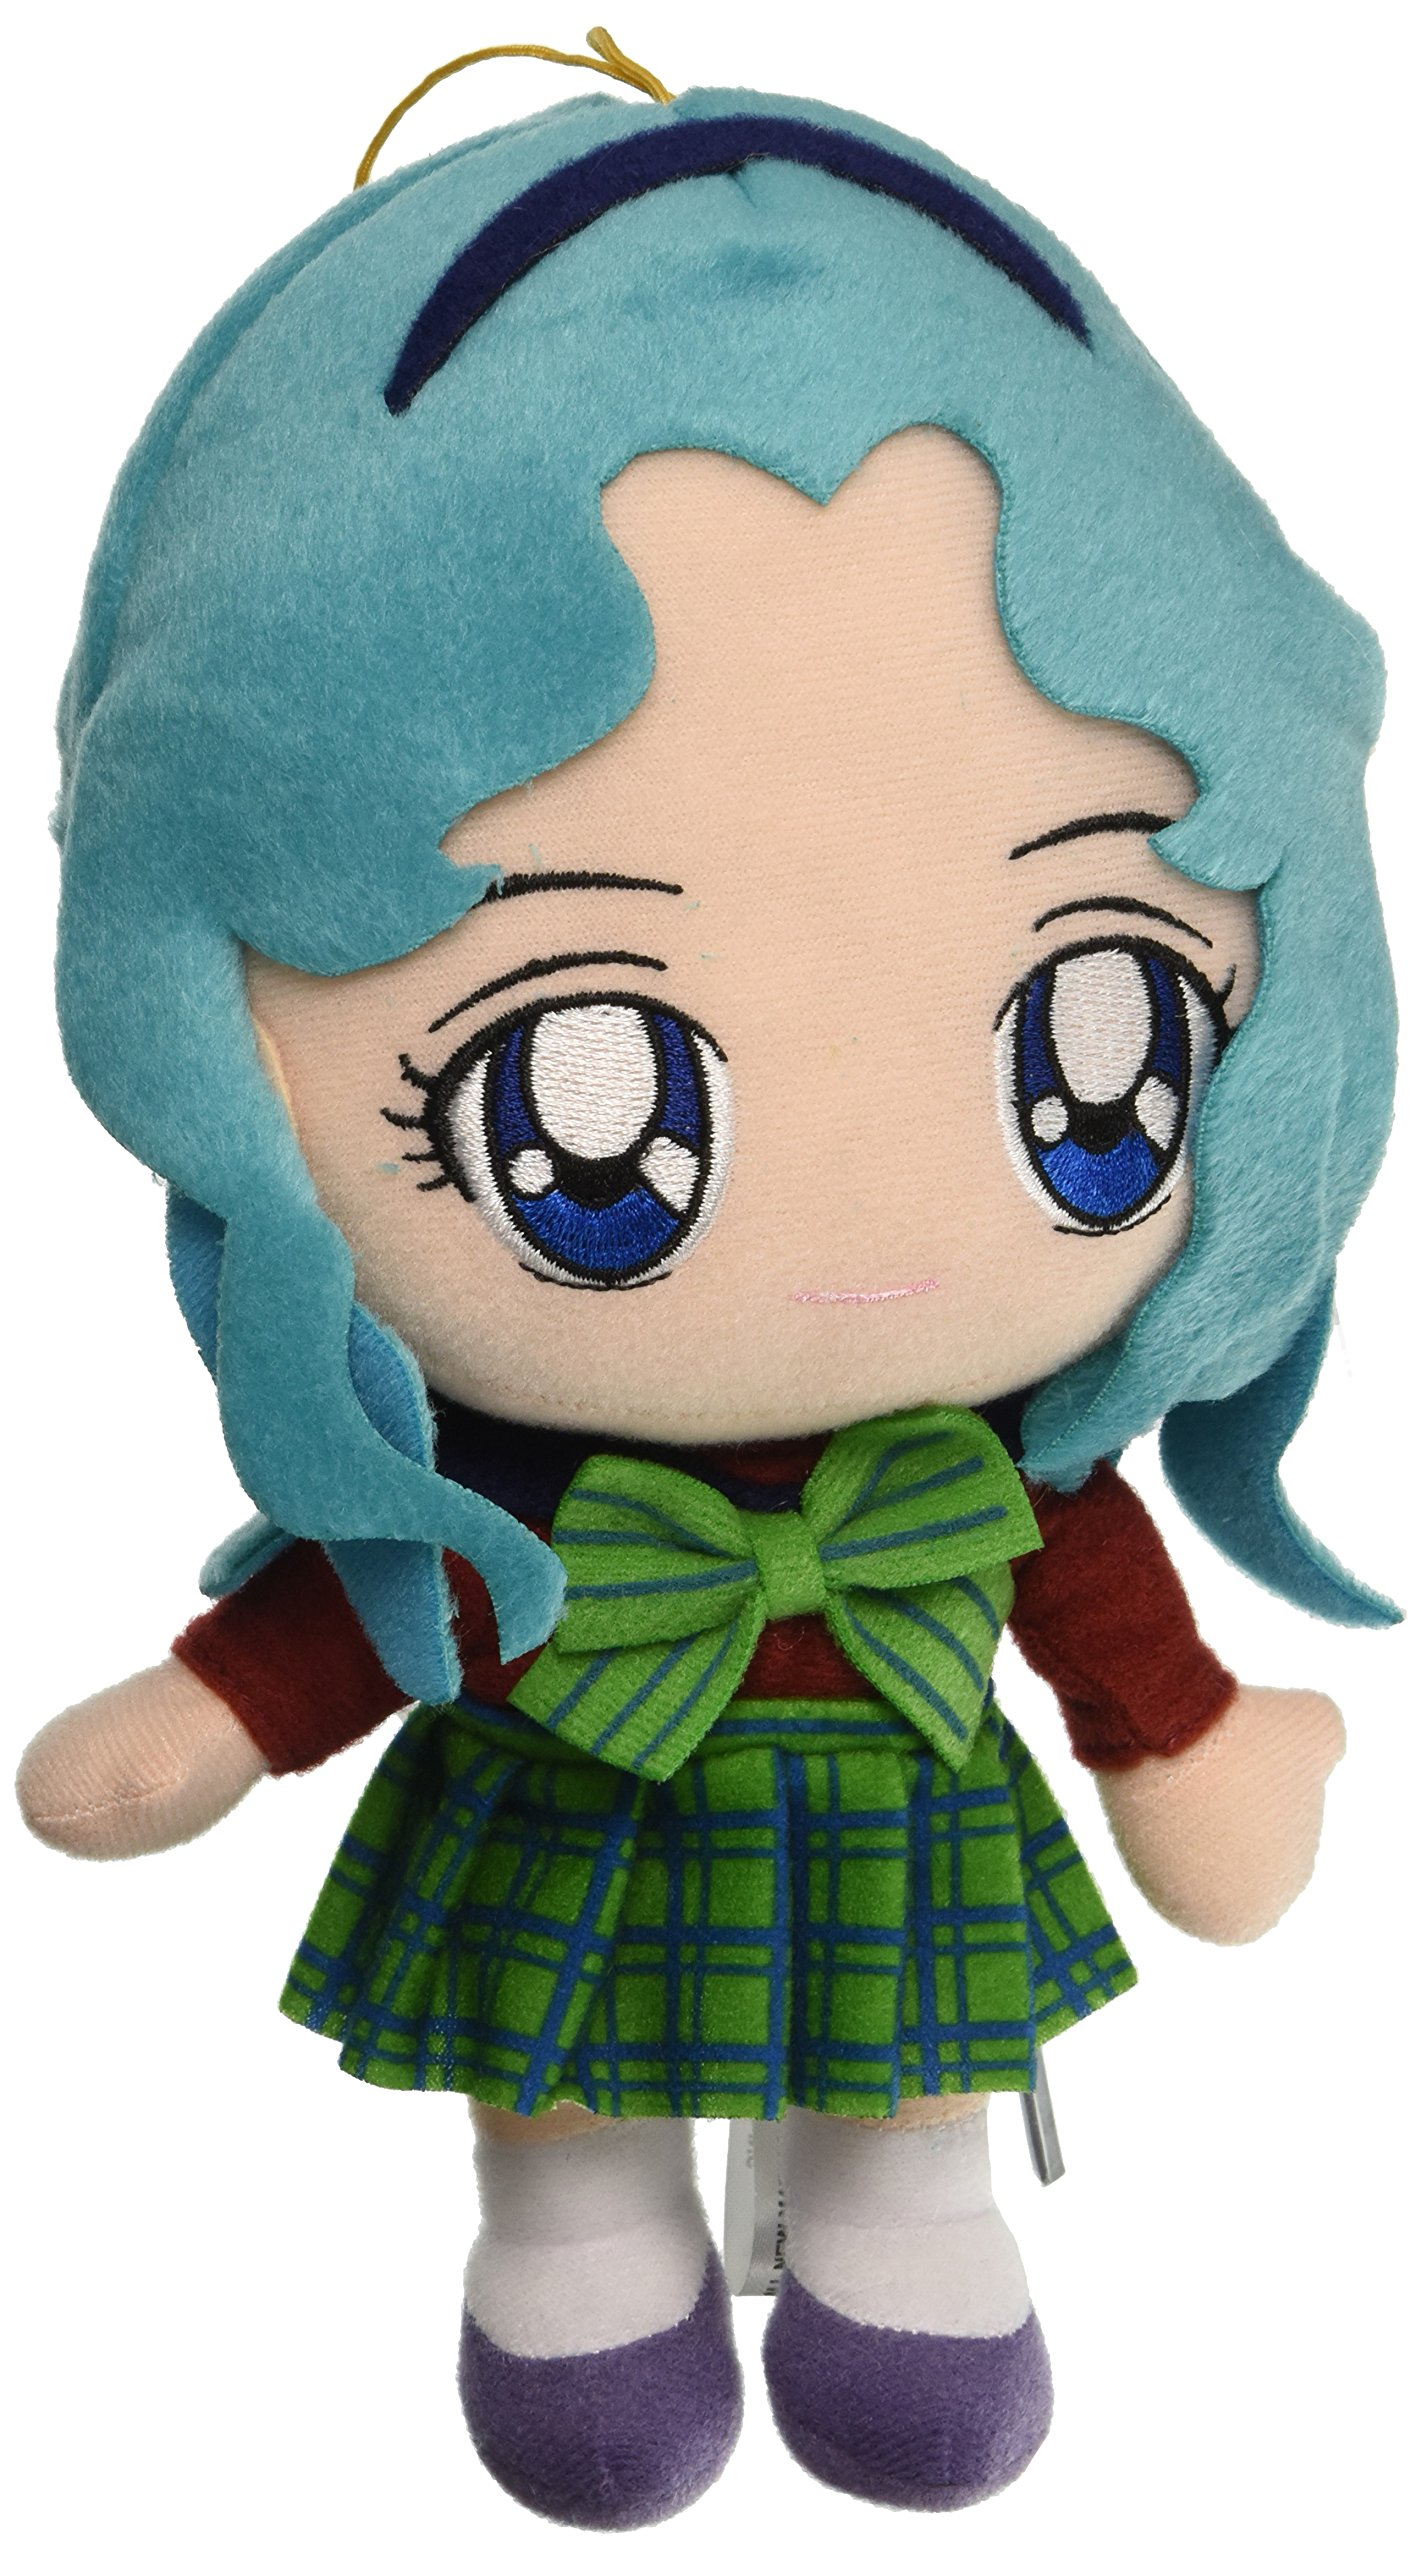 Plush Sailor Moon S Michiru 8 Soft Buy Online In Bahrain At Desertcart